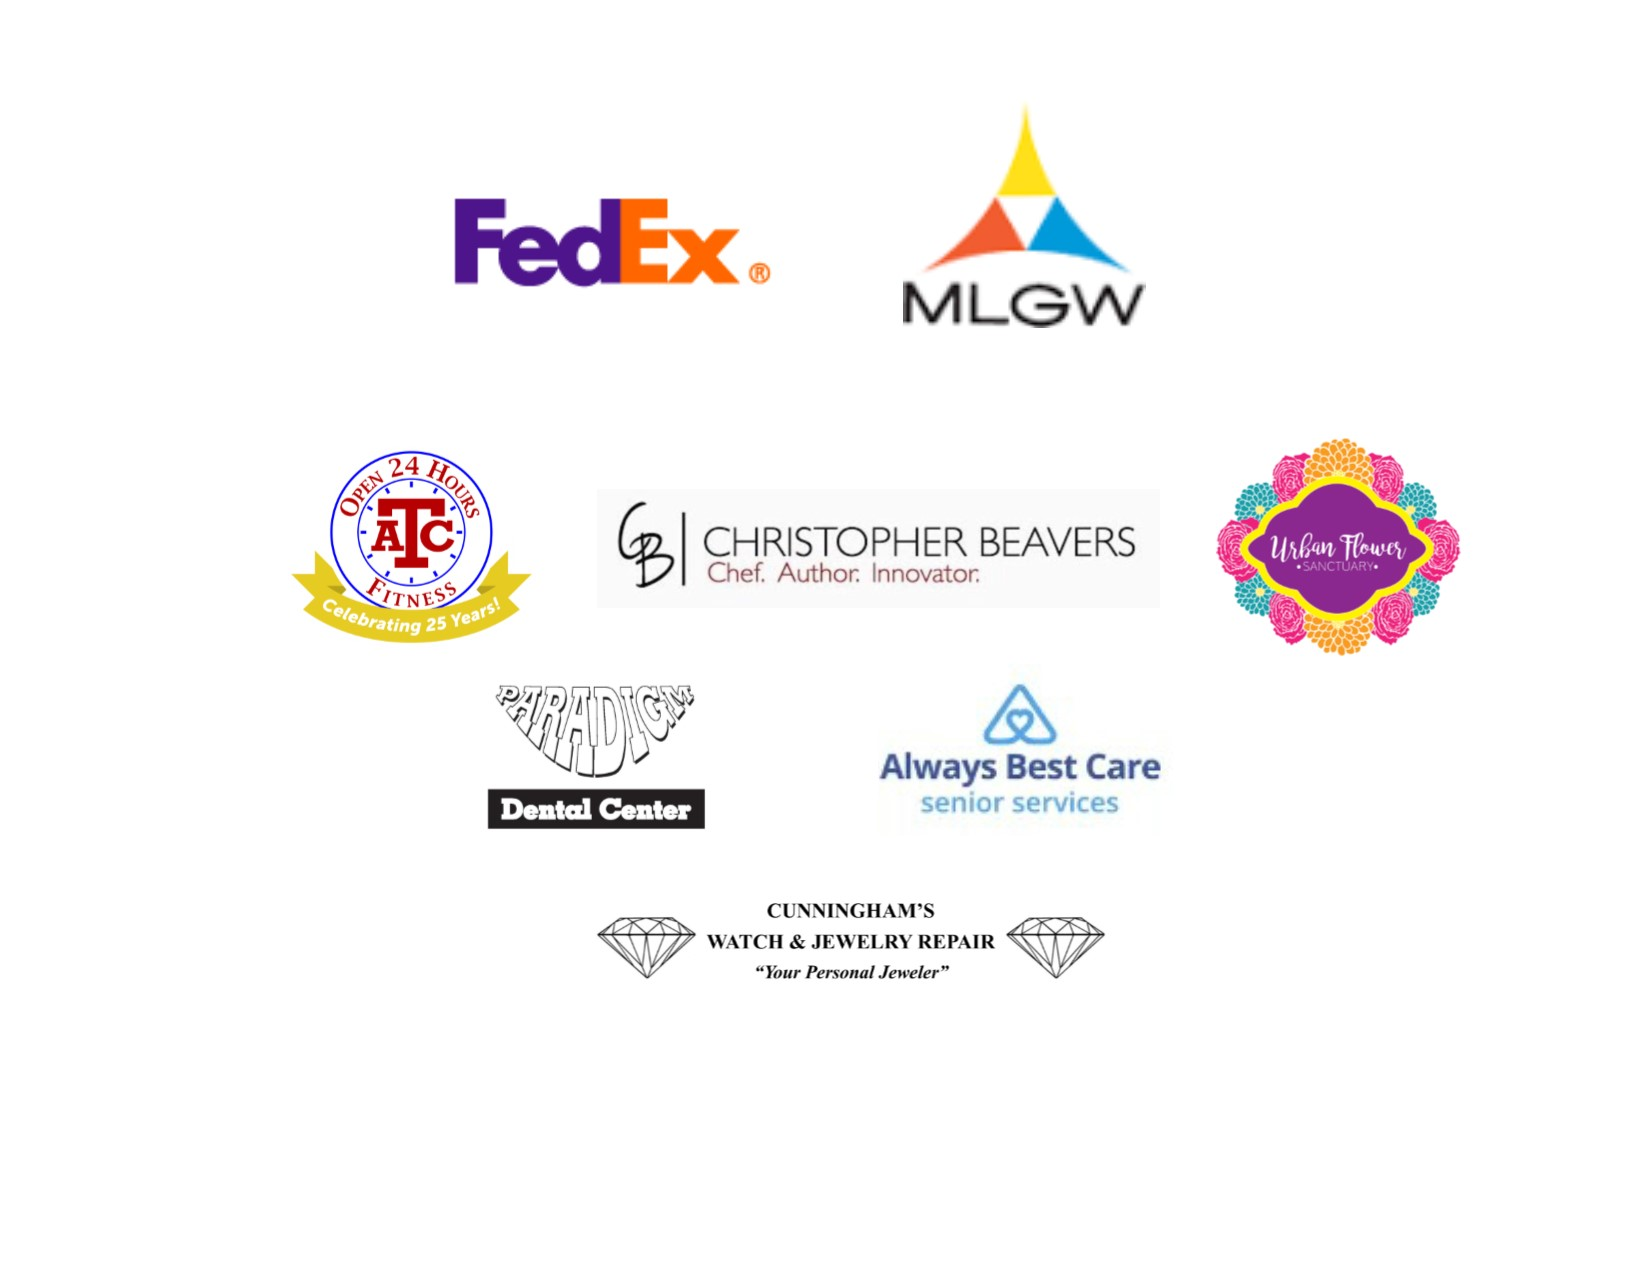 2018 Love Yourself Event sponsors